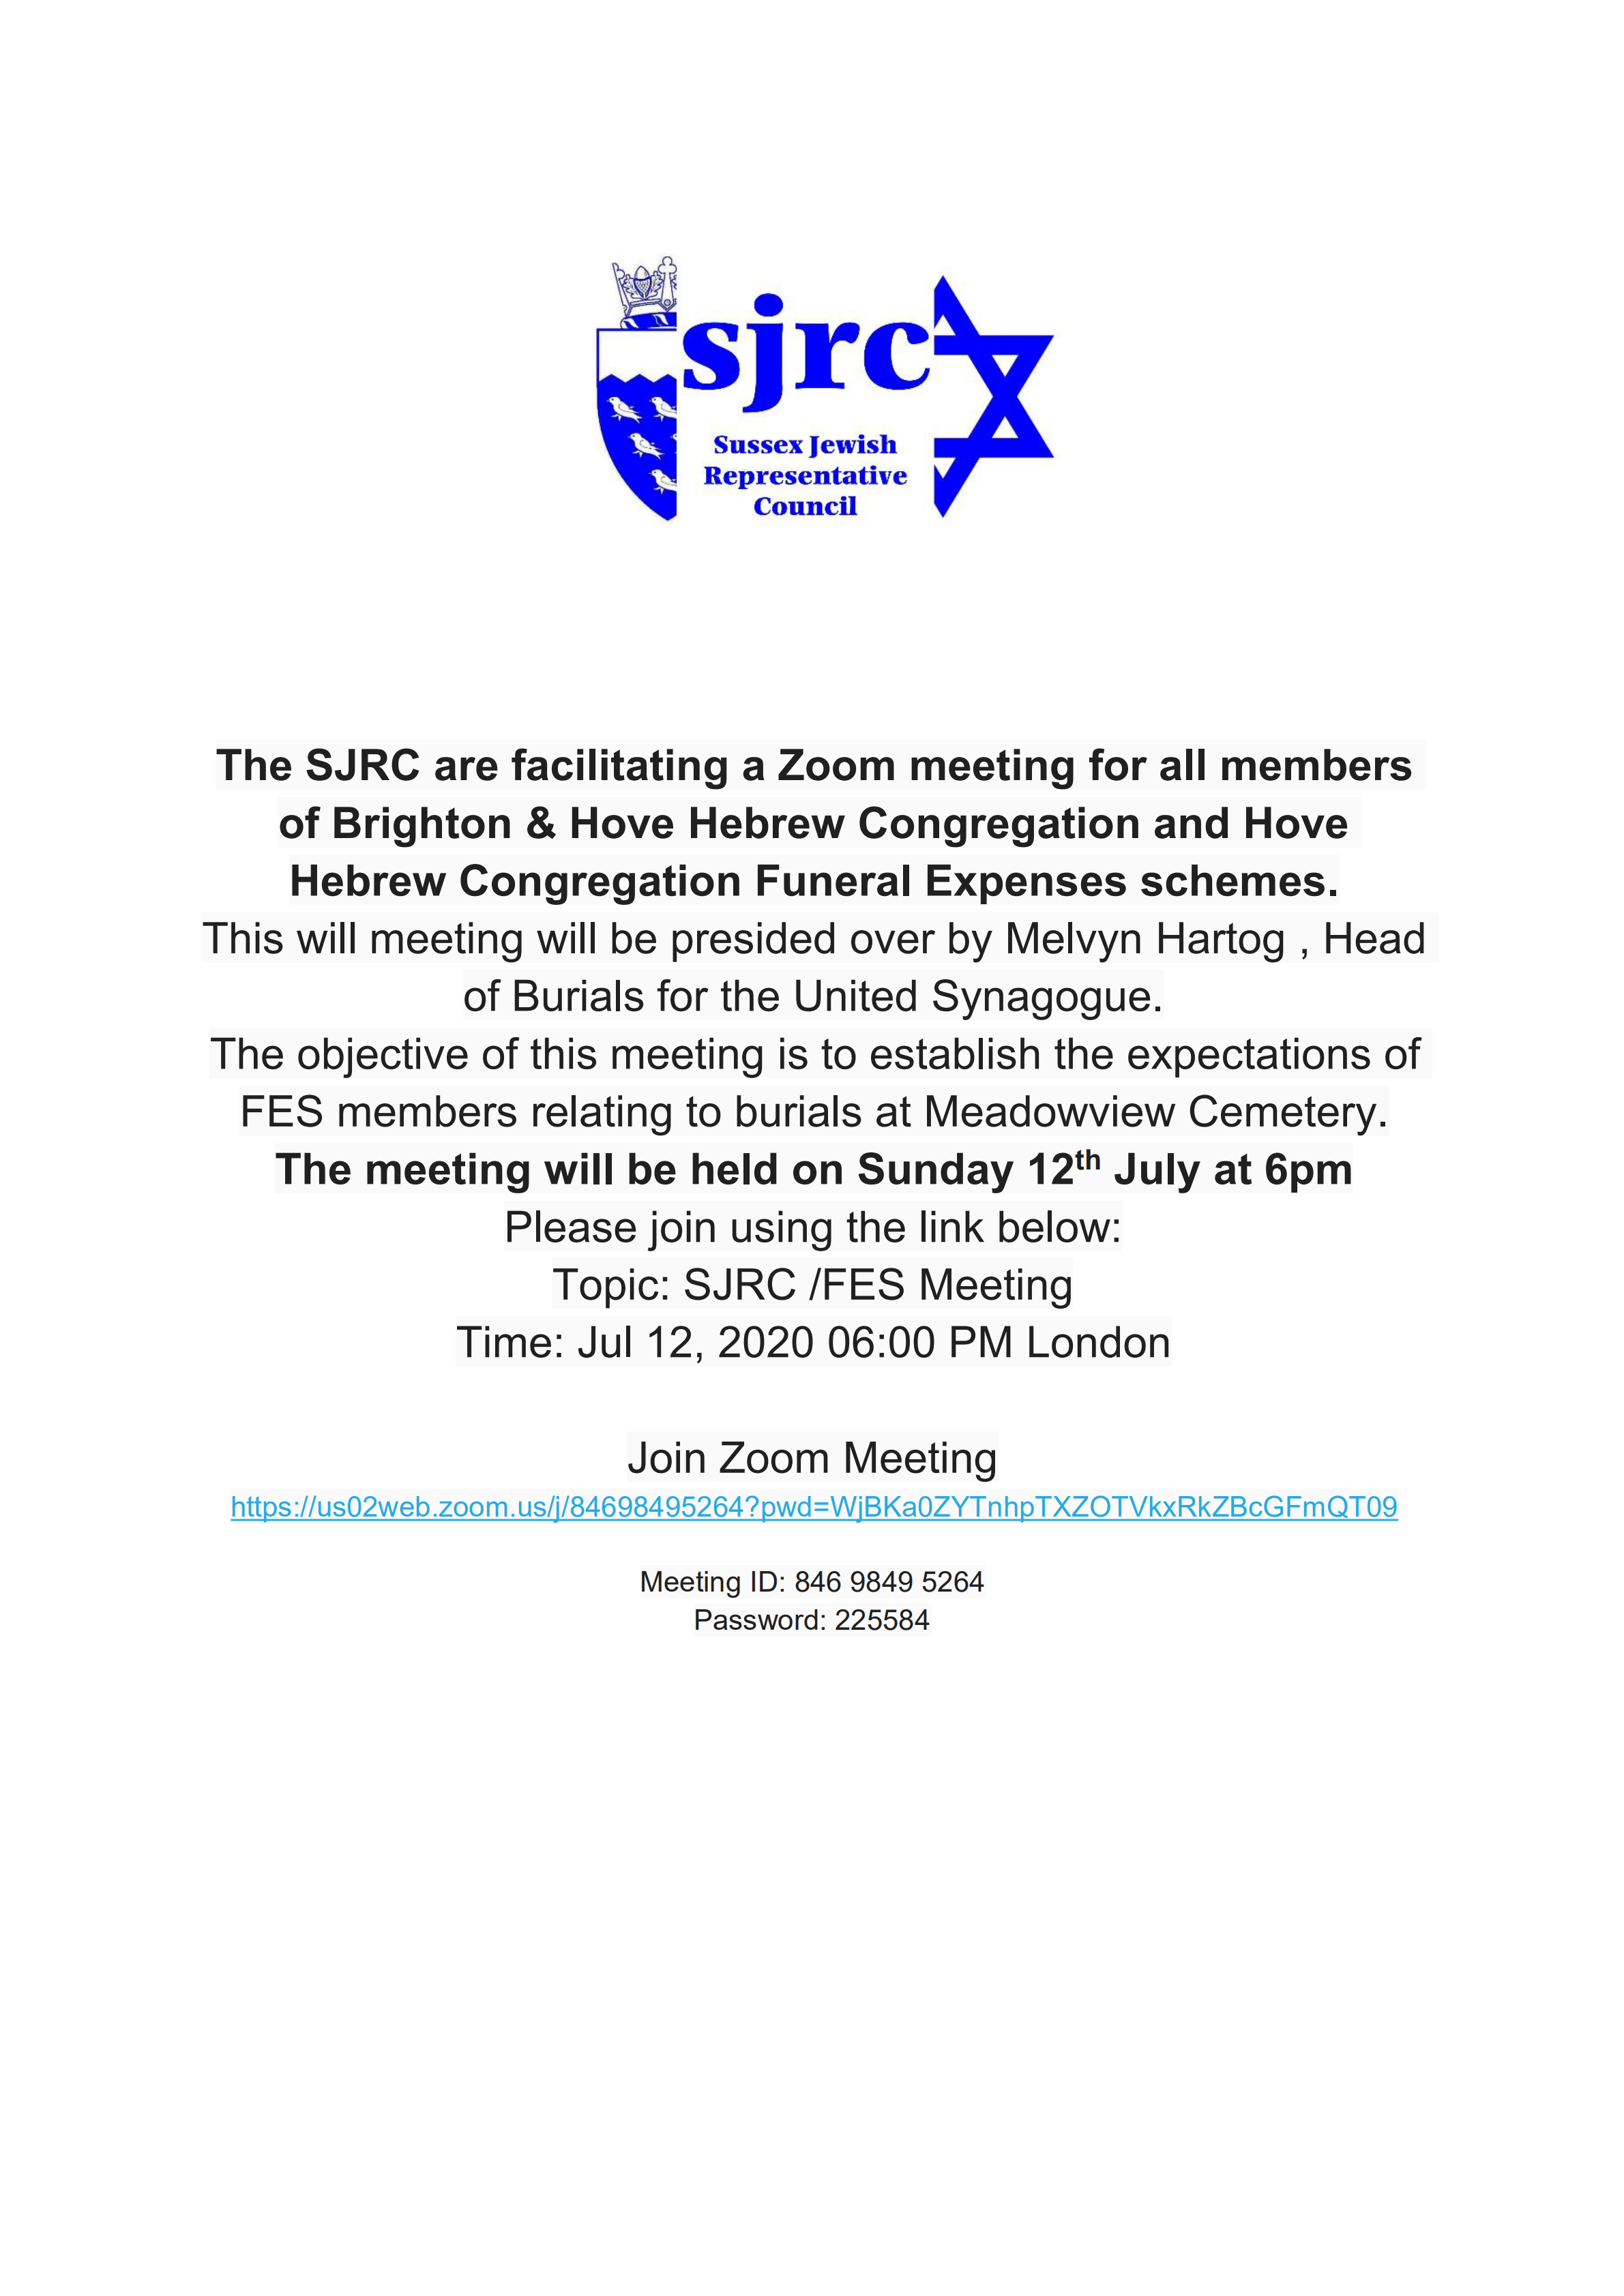 Meeting for members of local Orthodox Funeral Expenses Schemes